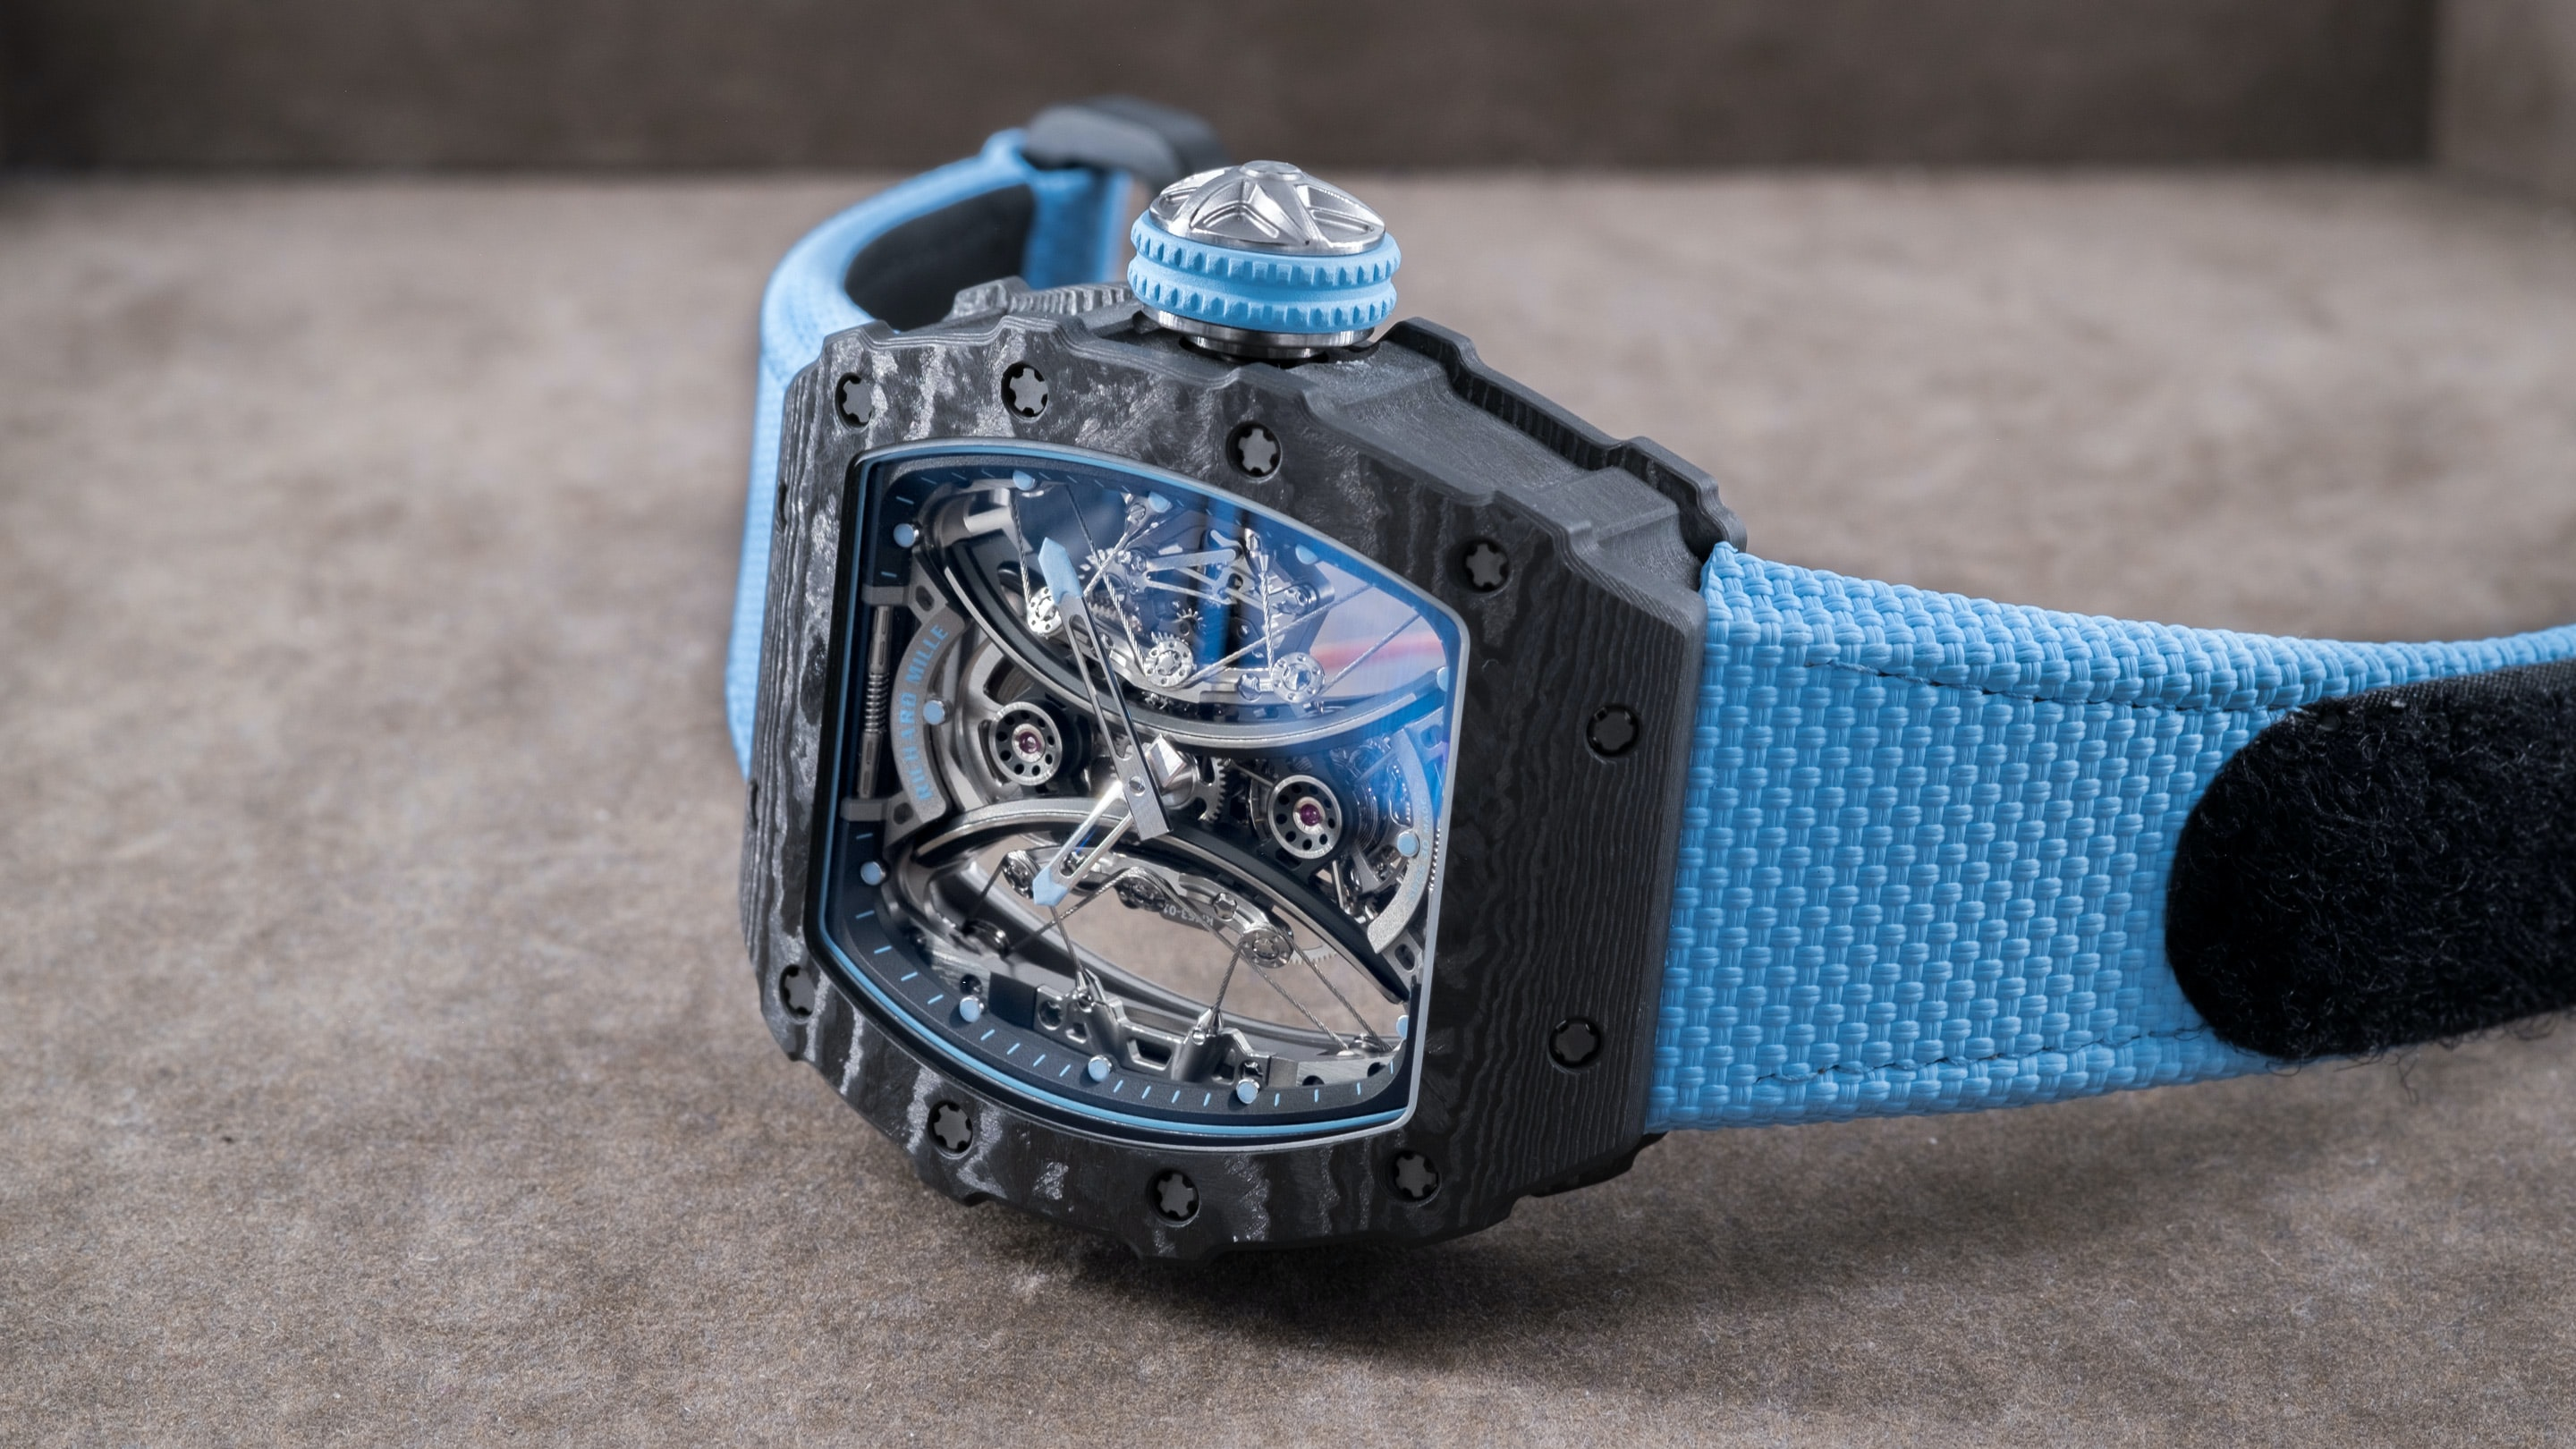 Rm5301 h.jpg?ixlib=rails 1.1 Hands-On: The Richard Mille RM 53-01 Tourbillon Pablo Mac Donough Hands-On: The Richard Mille RM 53-01 Tourbillon Pablo Mac Donough rm5301 h